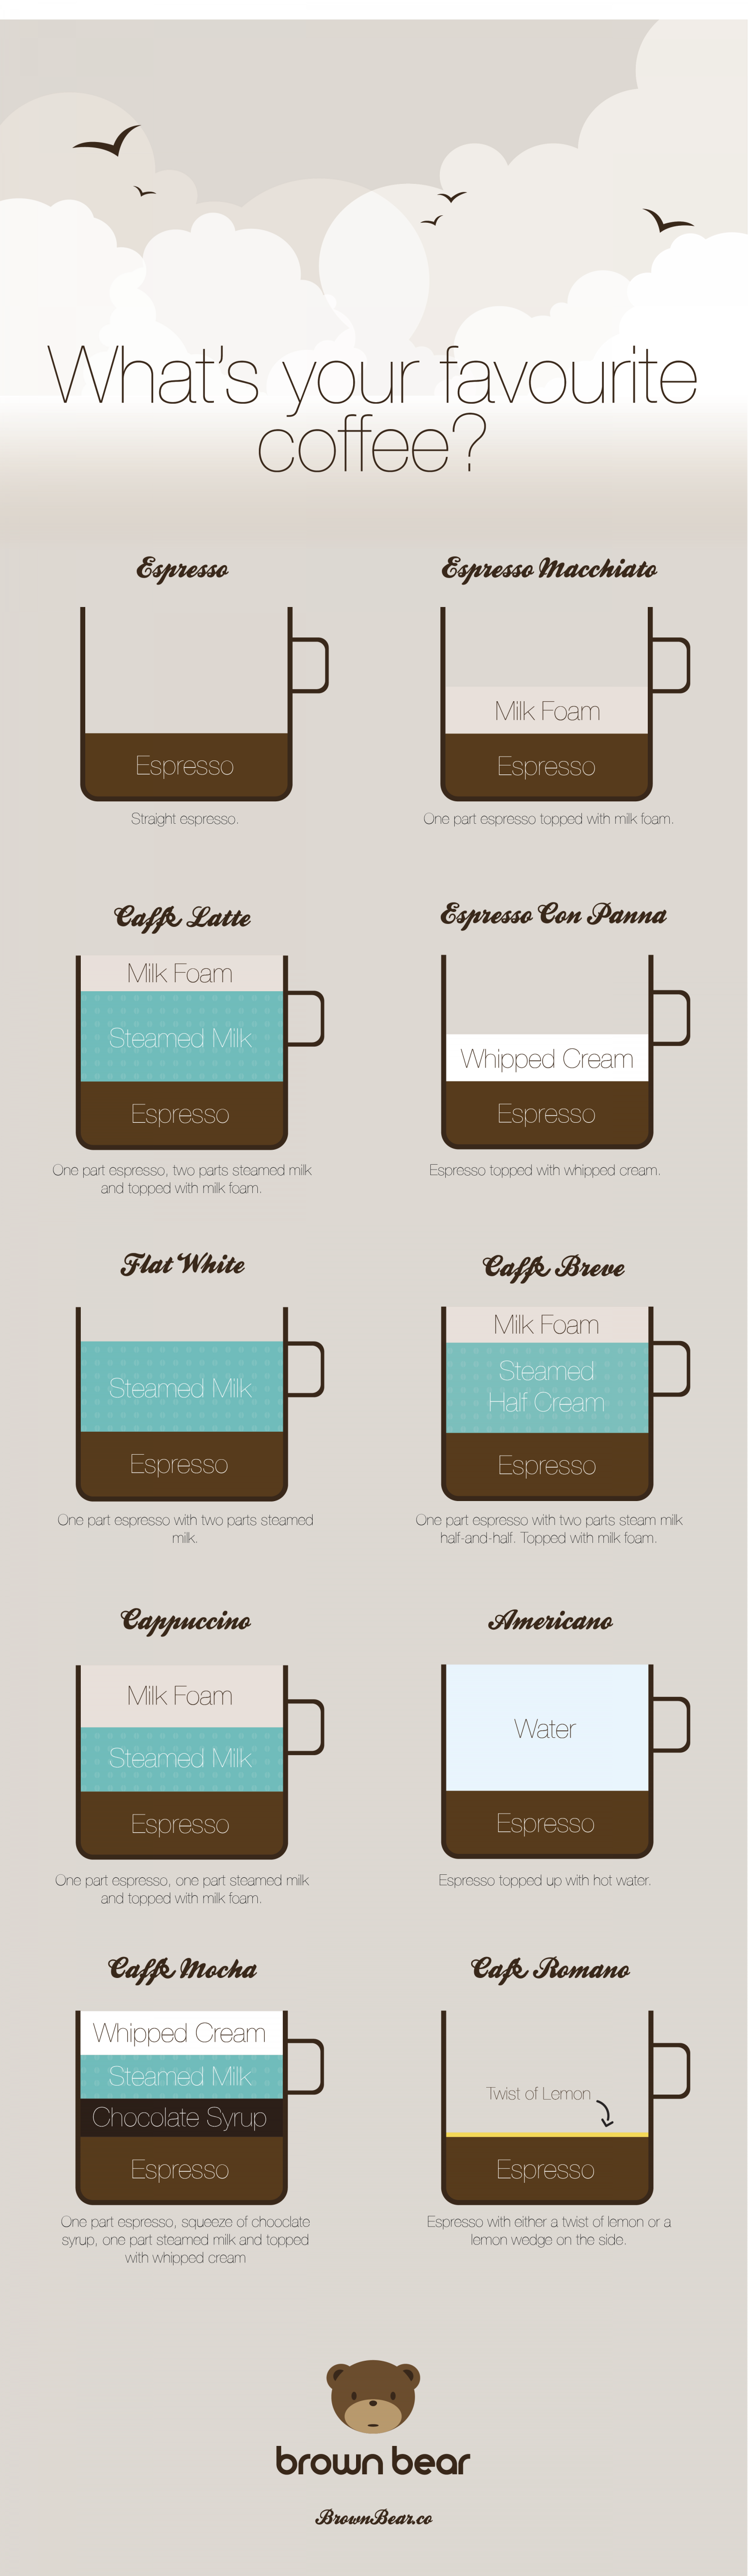 What's your favourite coffee? Infographic